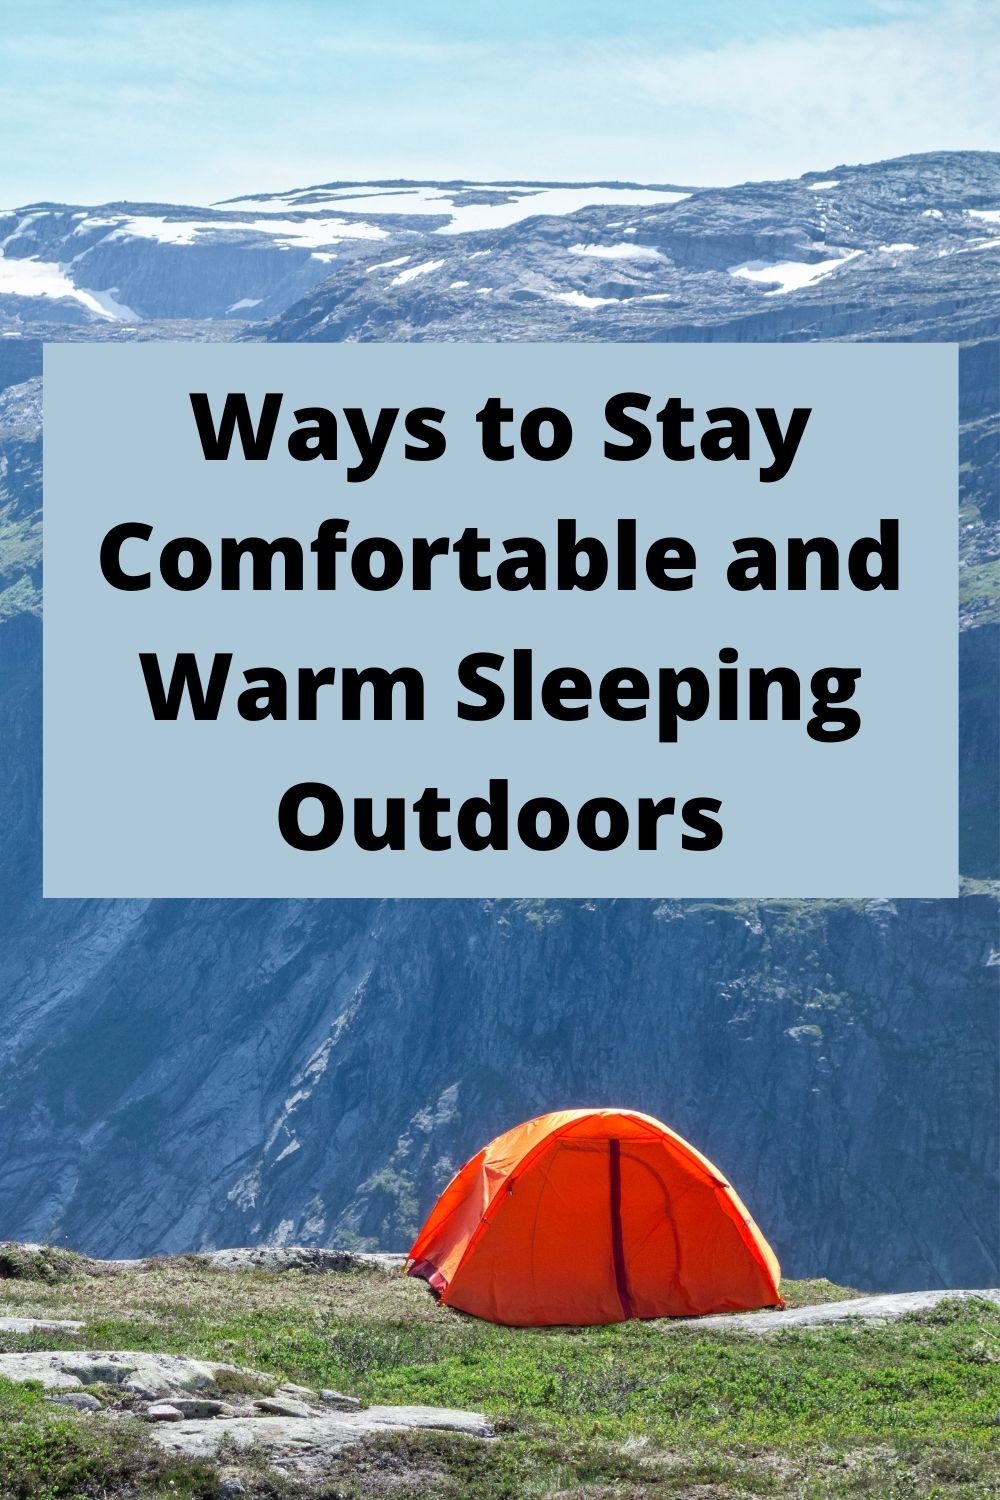 How to Stay Comfortable and Warm Sleeping Outdoors